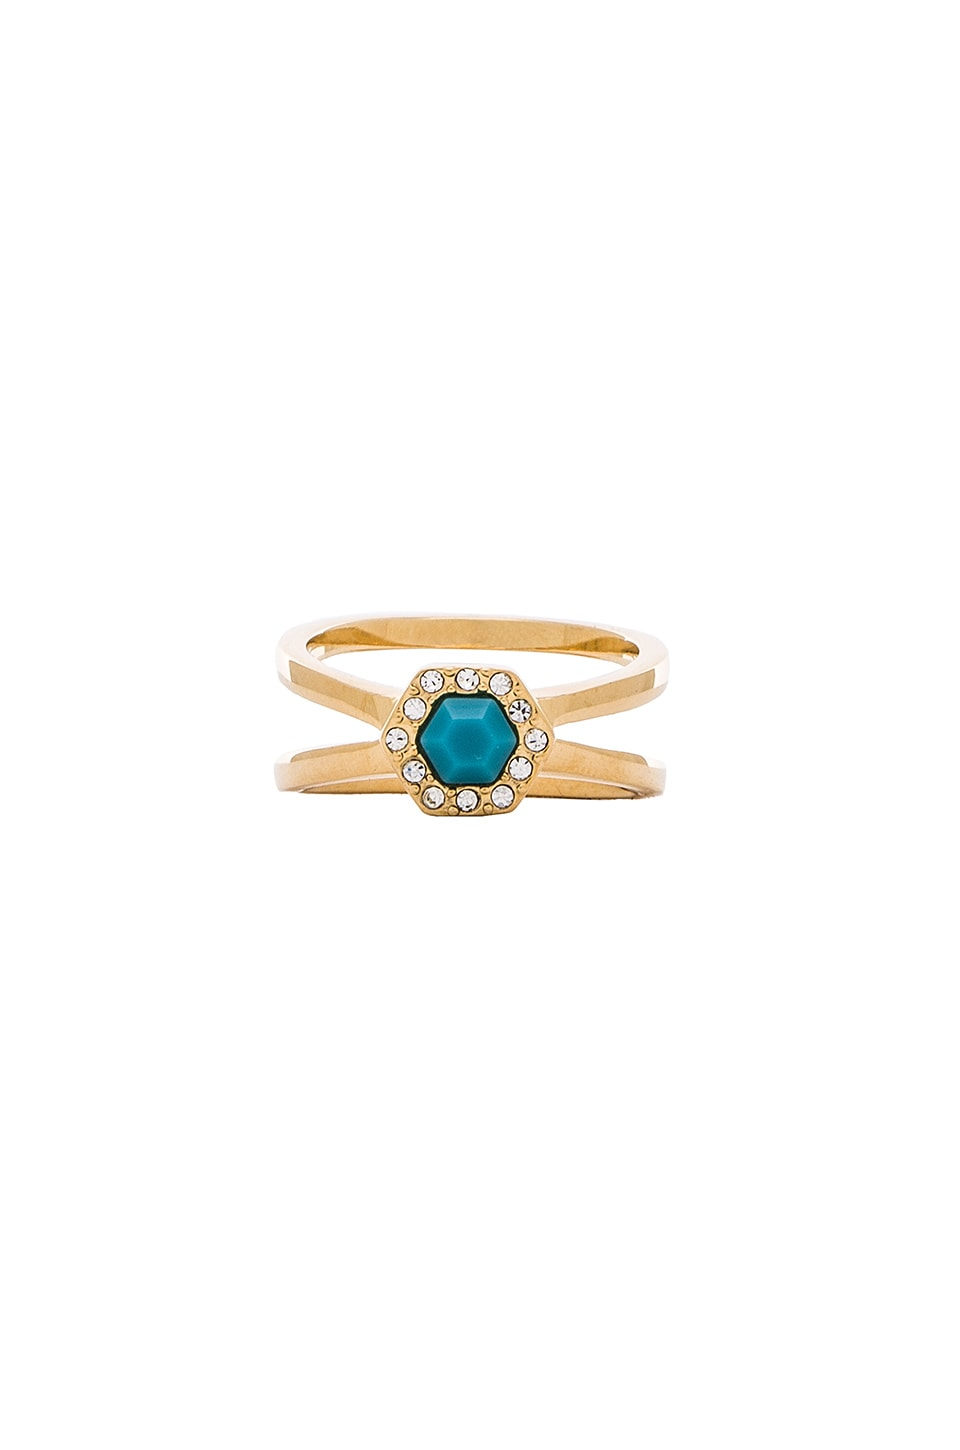 Rebecca Minkoff Pave Gem Ring in Gold & Turquoise